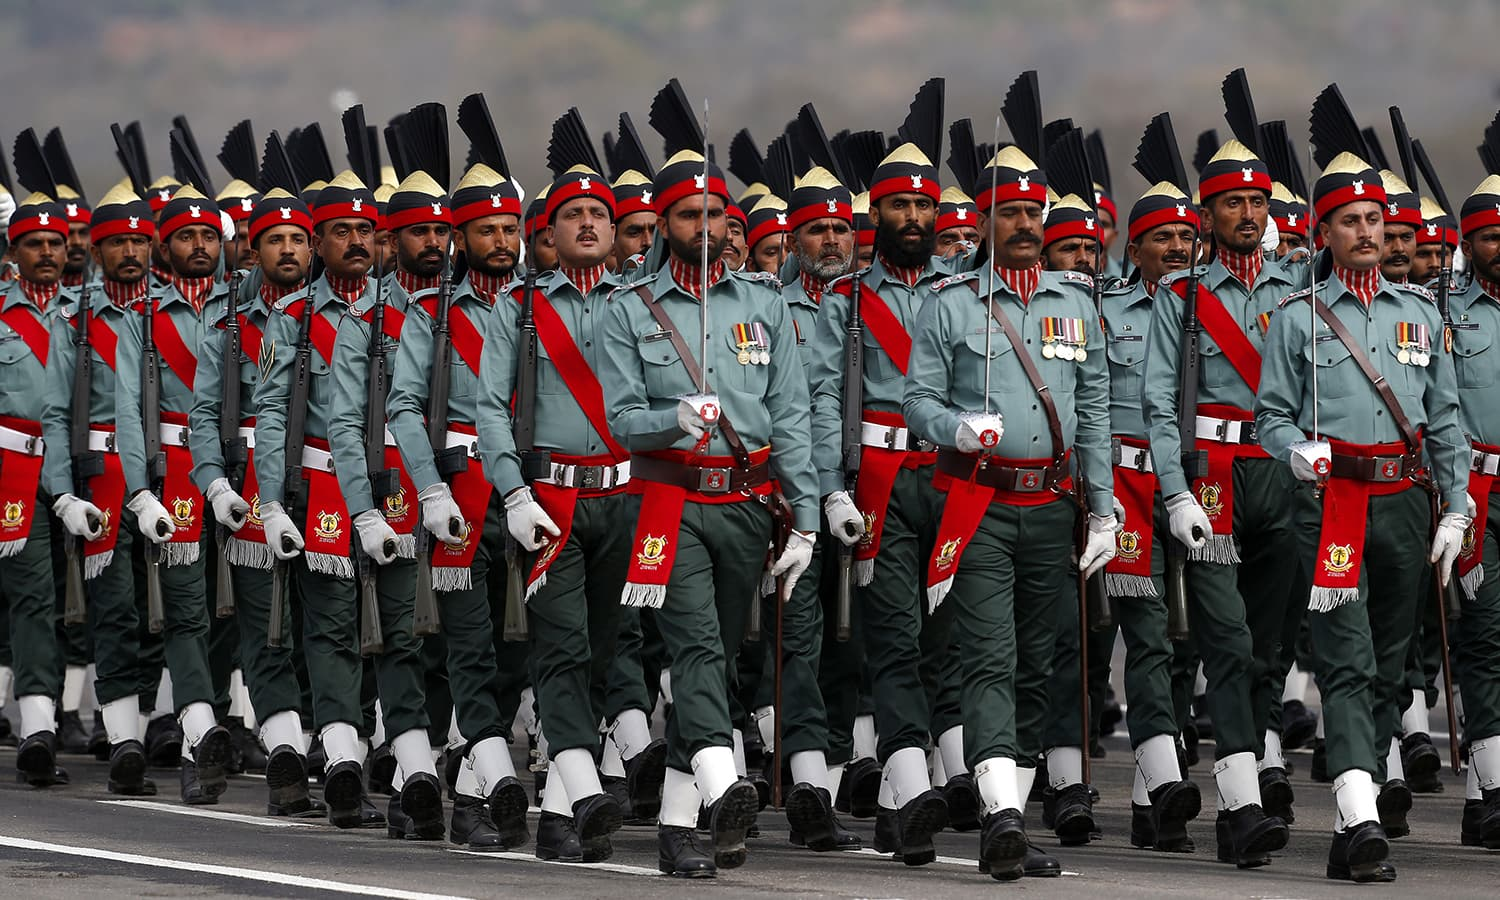 Paramilitary troops march during the military parade. ─ AP